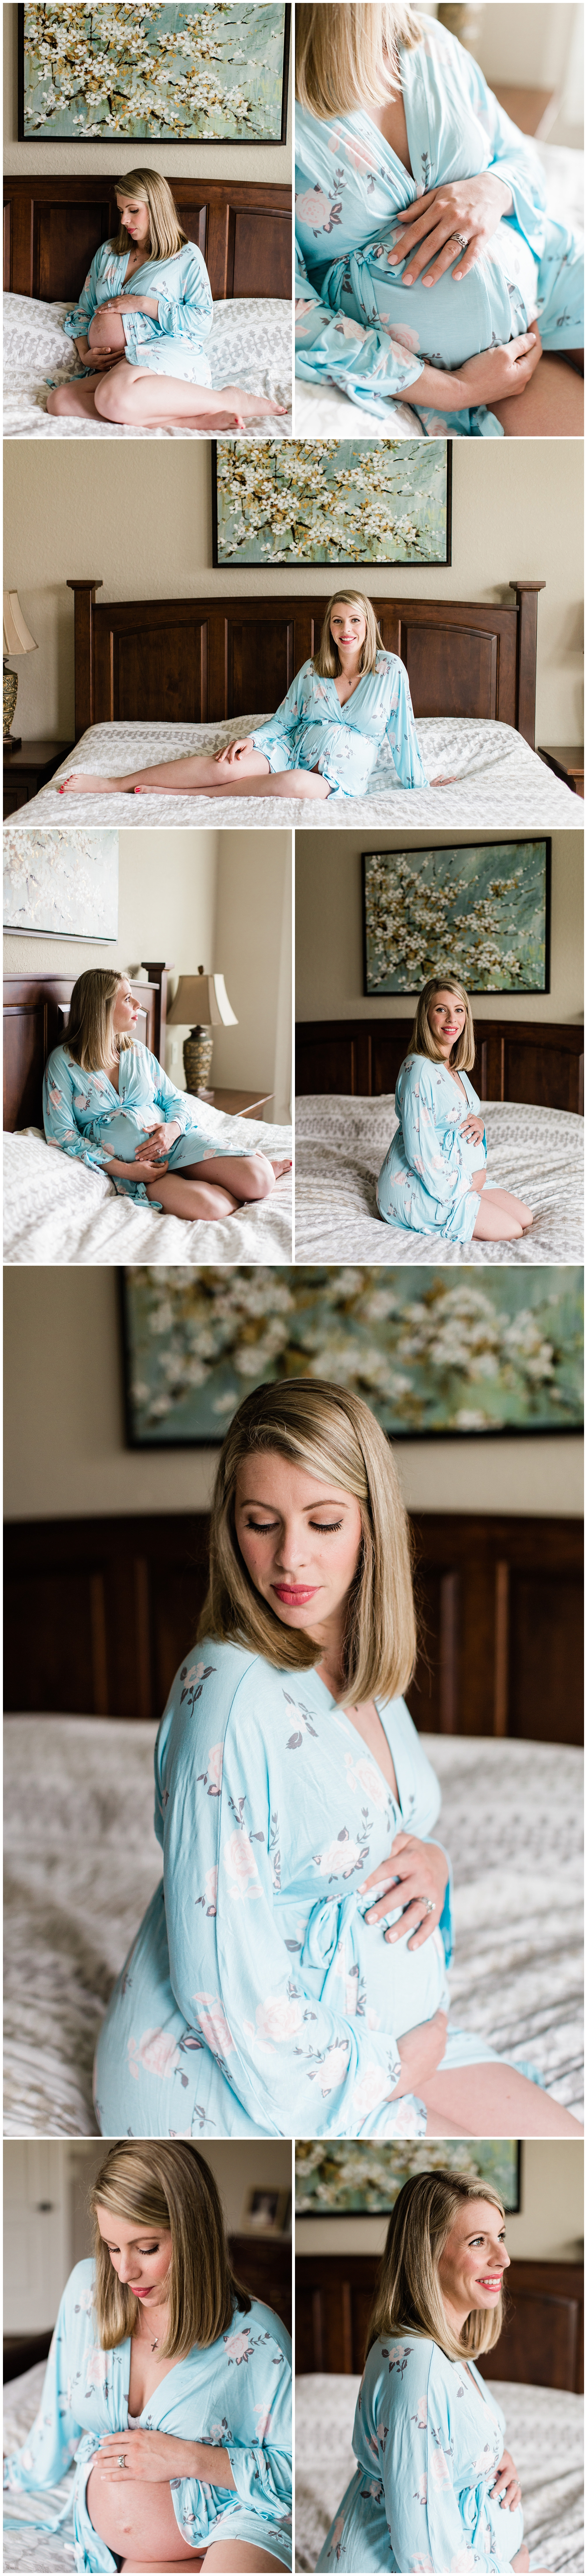 The_Woodlands_Maternity_Session_0006.jpg